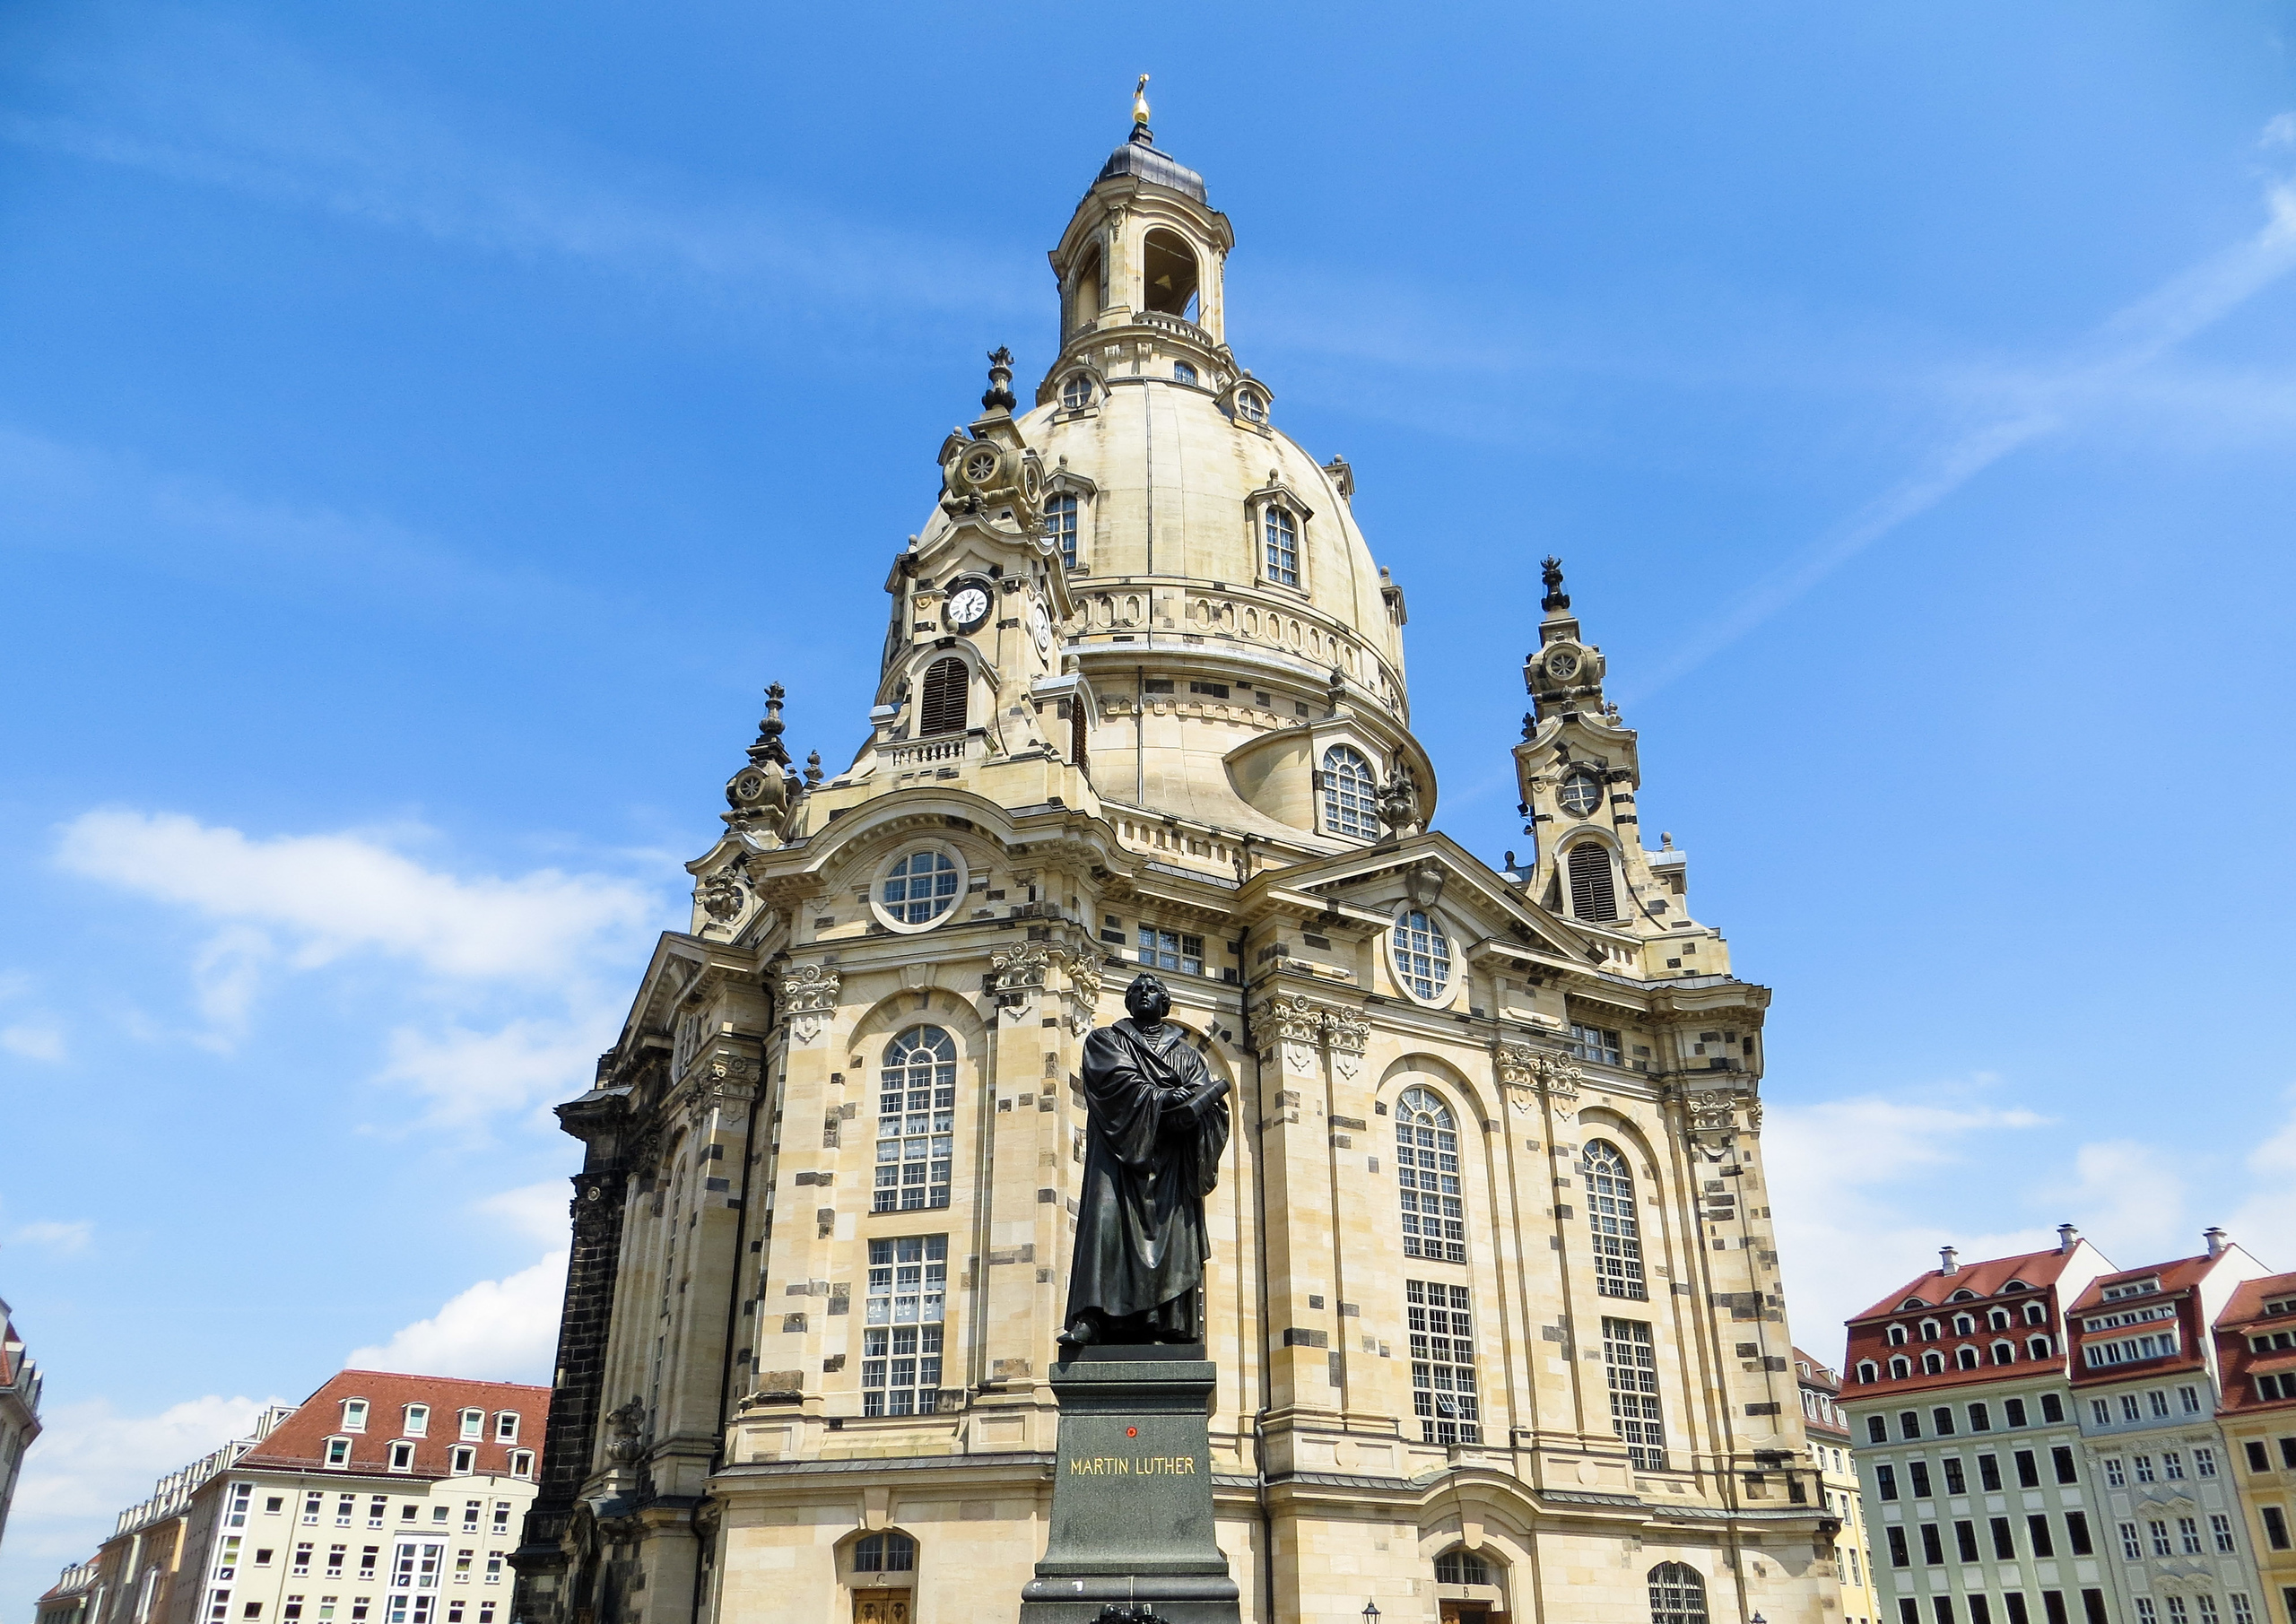 why should i go to germany? learn about the reformation